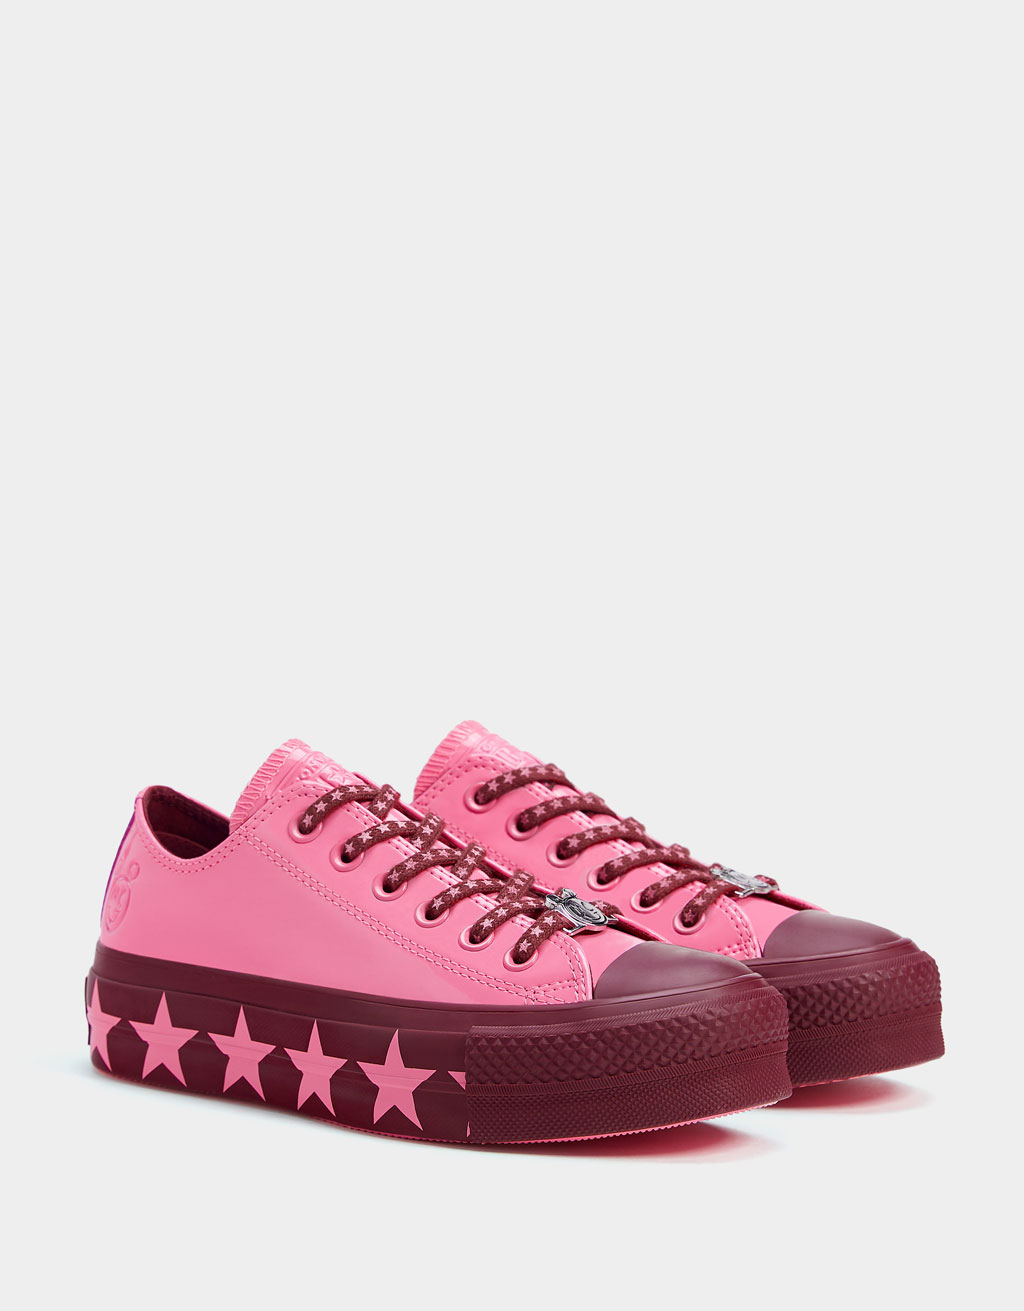 CONVERSE X MILEY CYRUS platform trainers